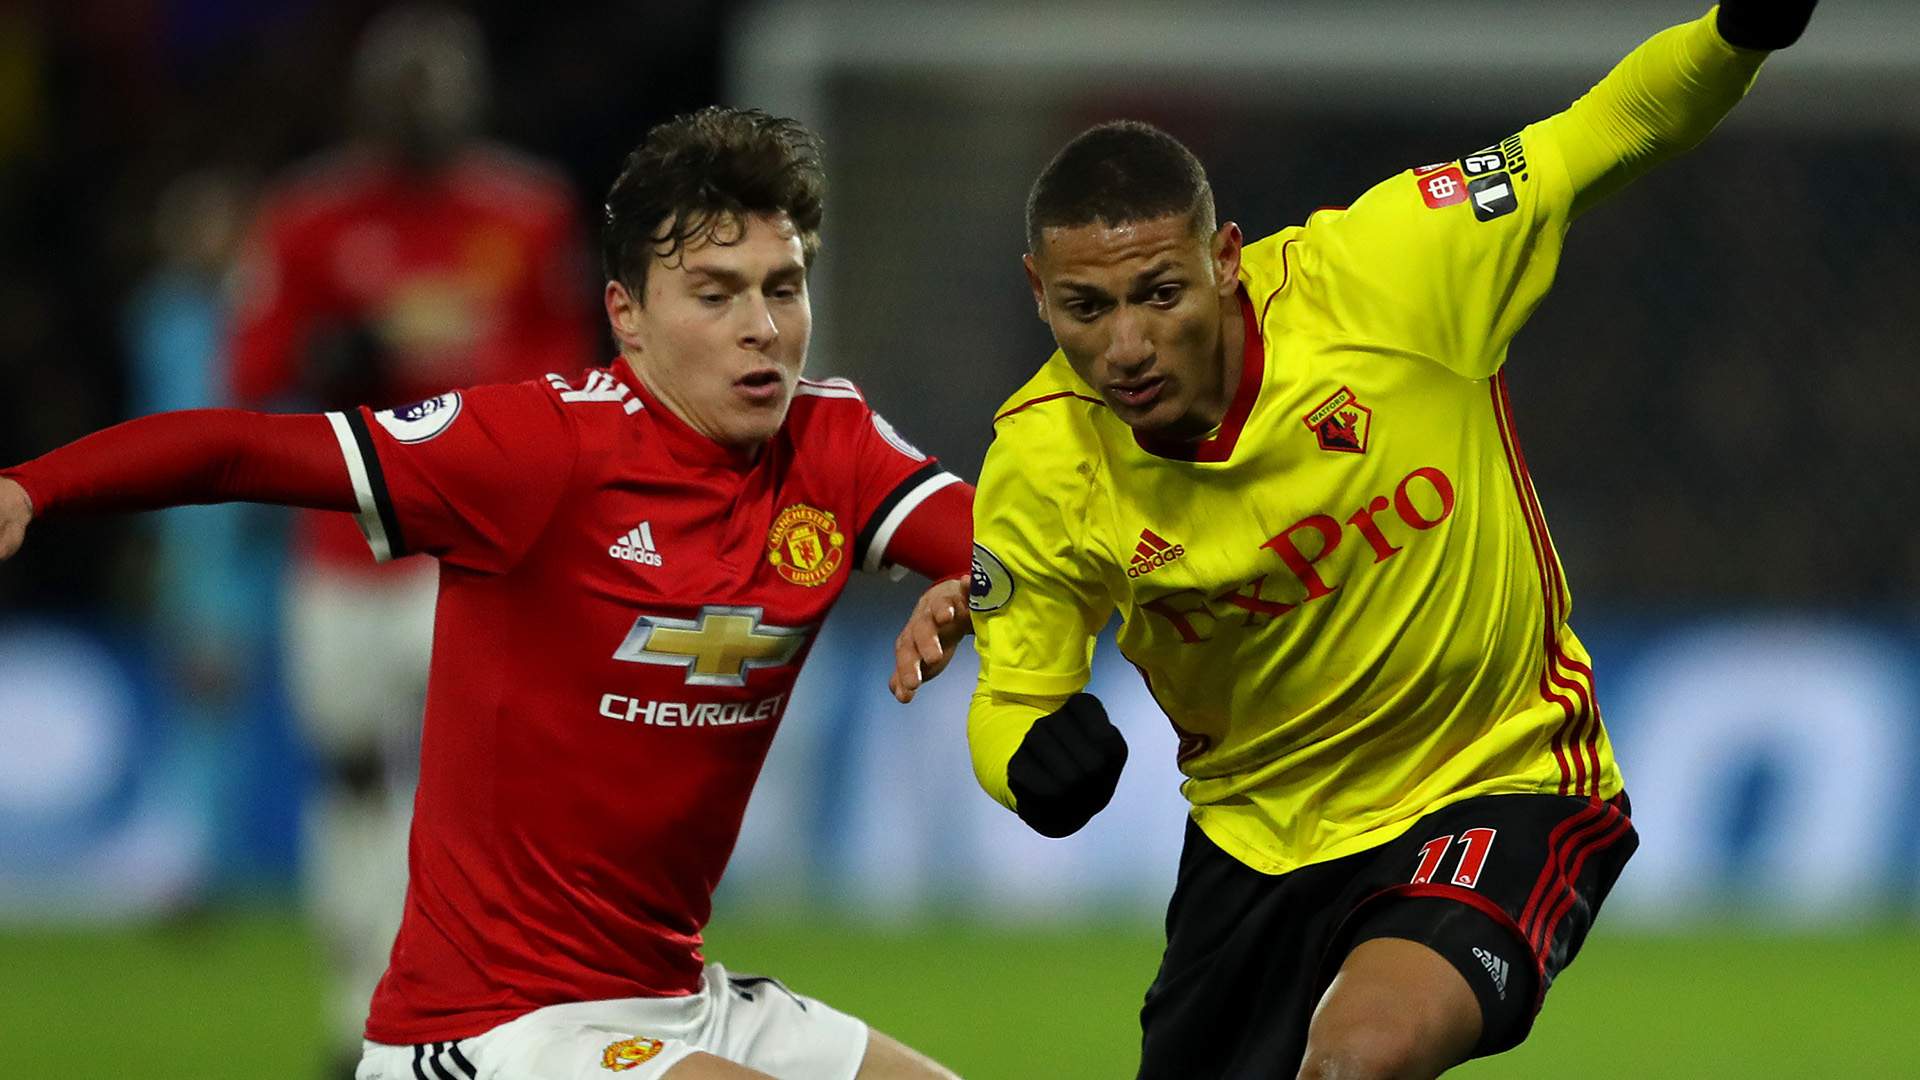 Richarlison Lindelof Watford Manchester United 28112018 Premier League